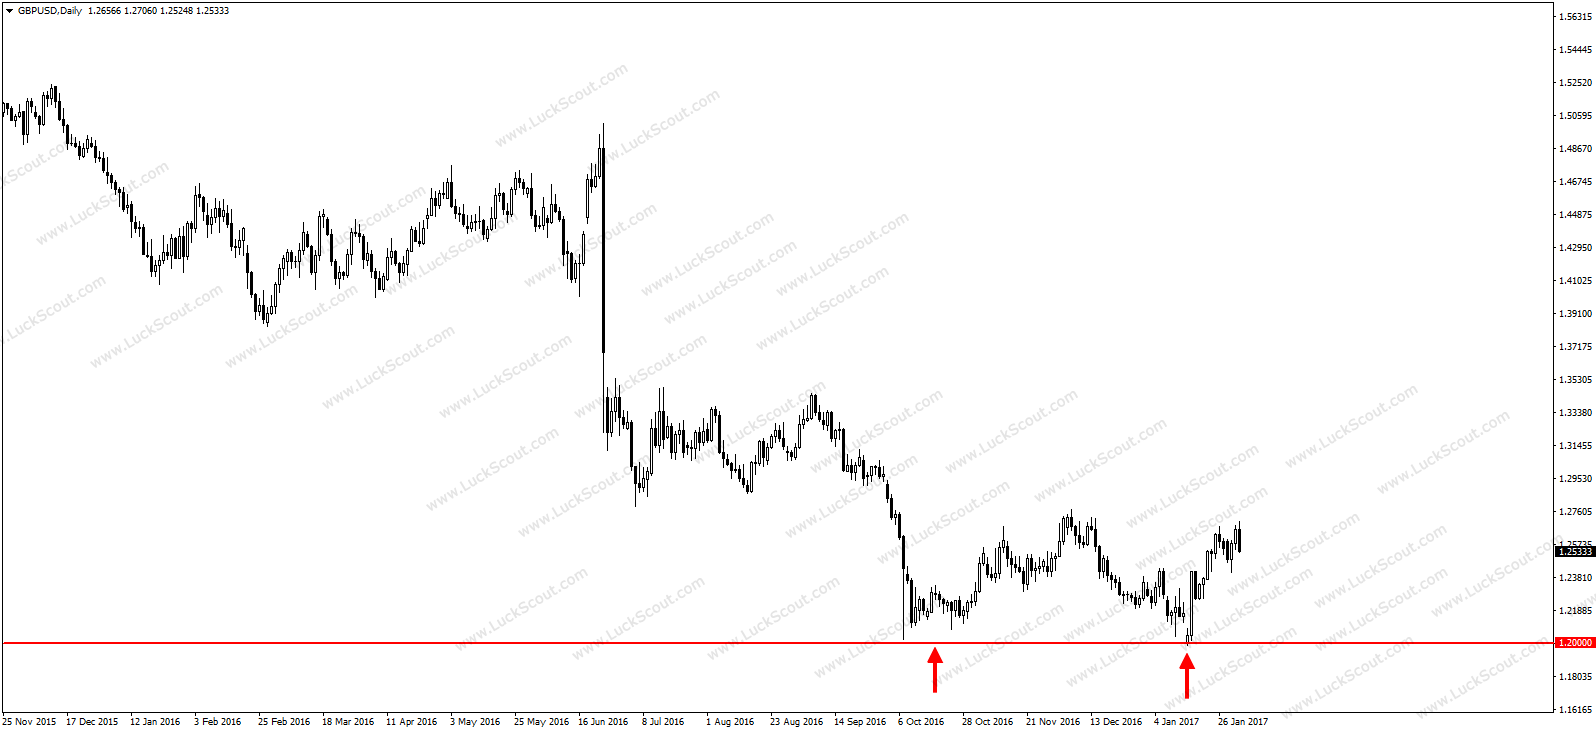 GBP/USD reaction to 1.2000 level which is a strong psychological support level.